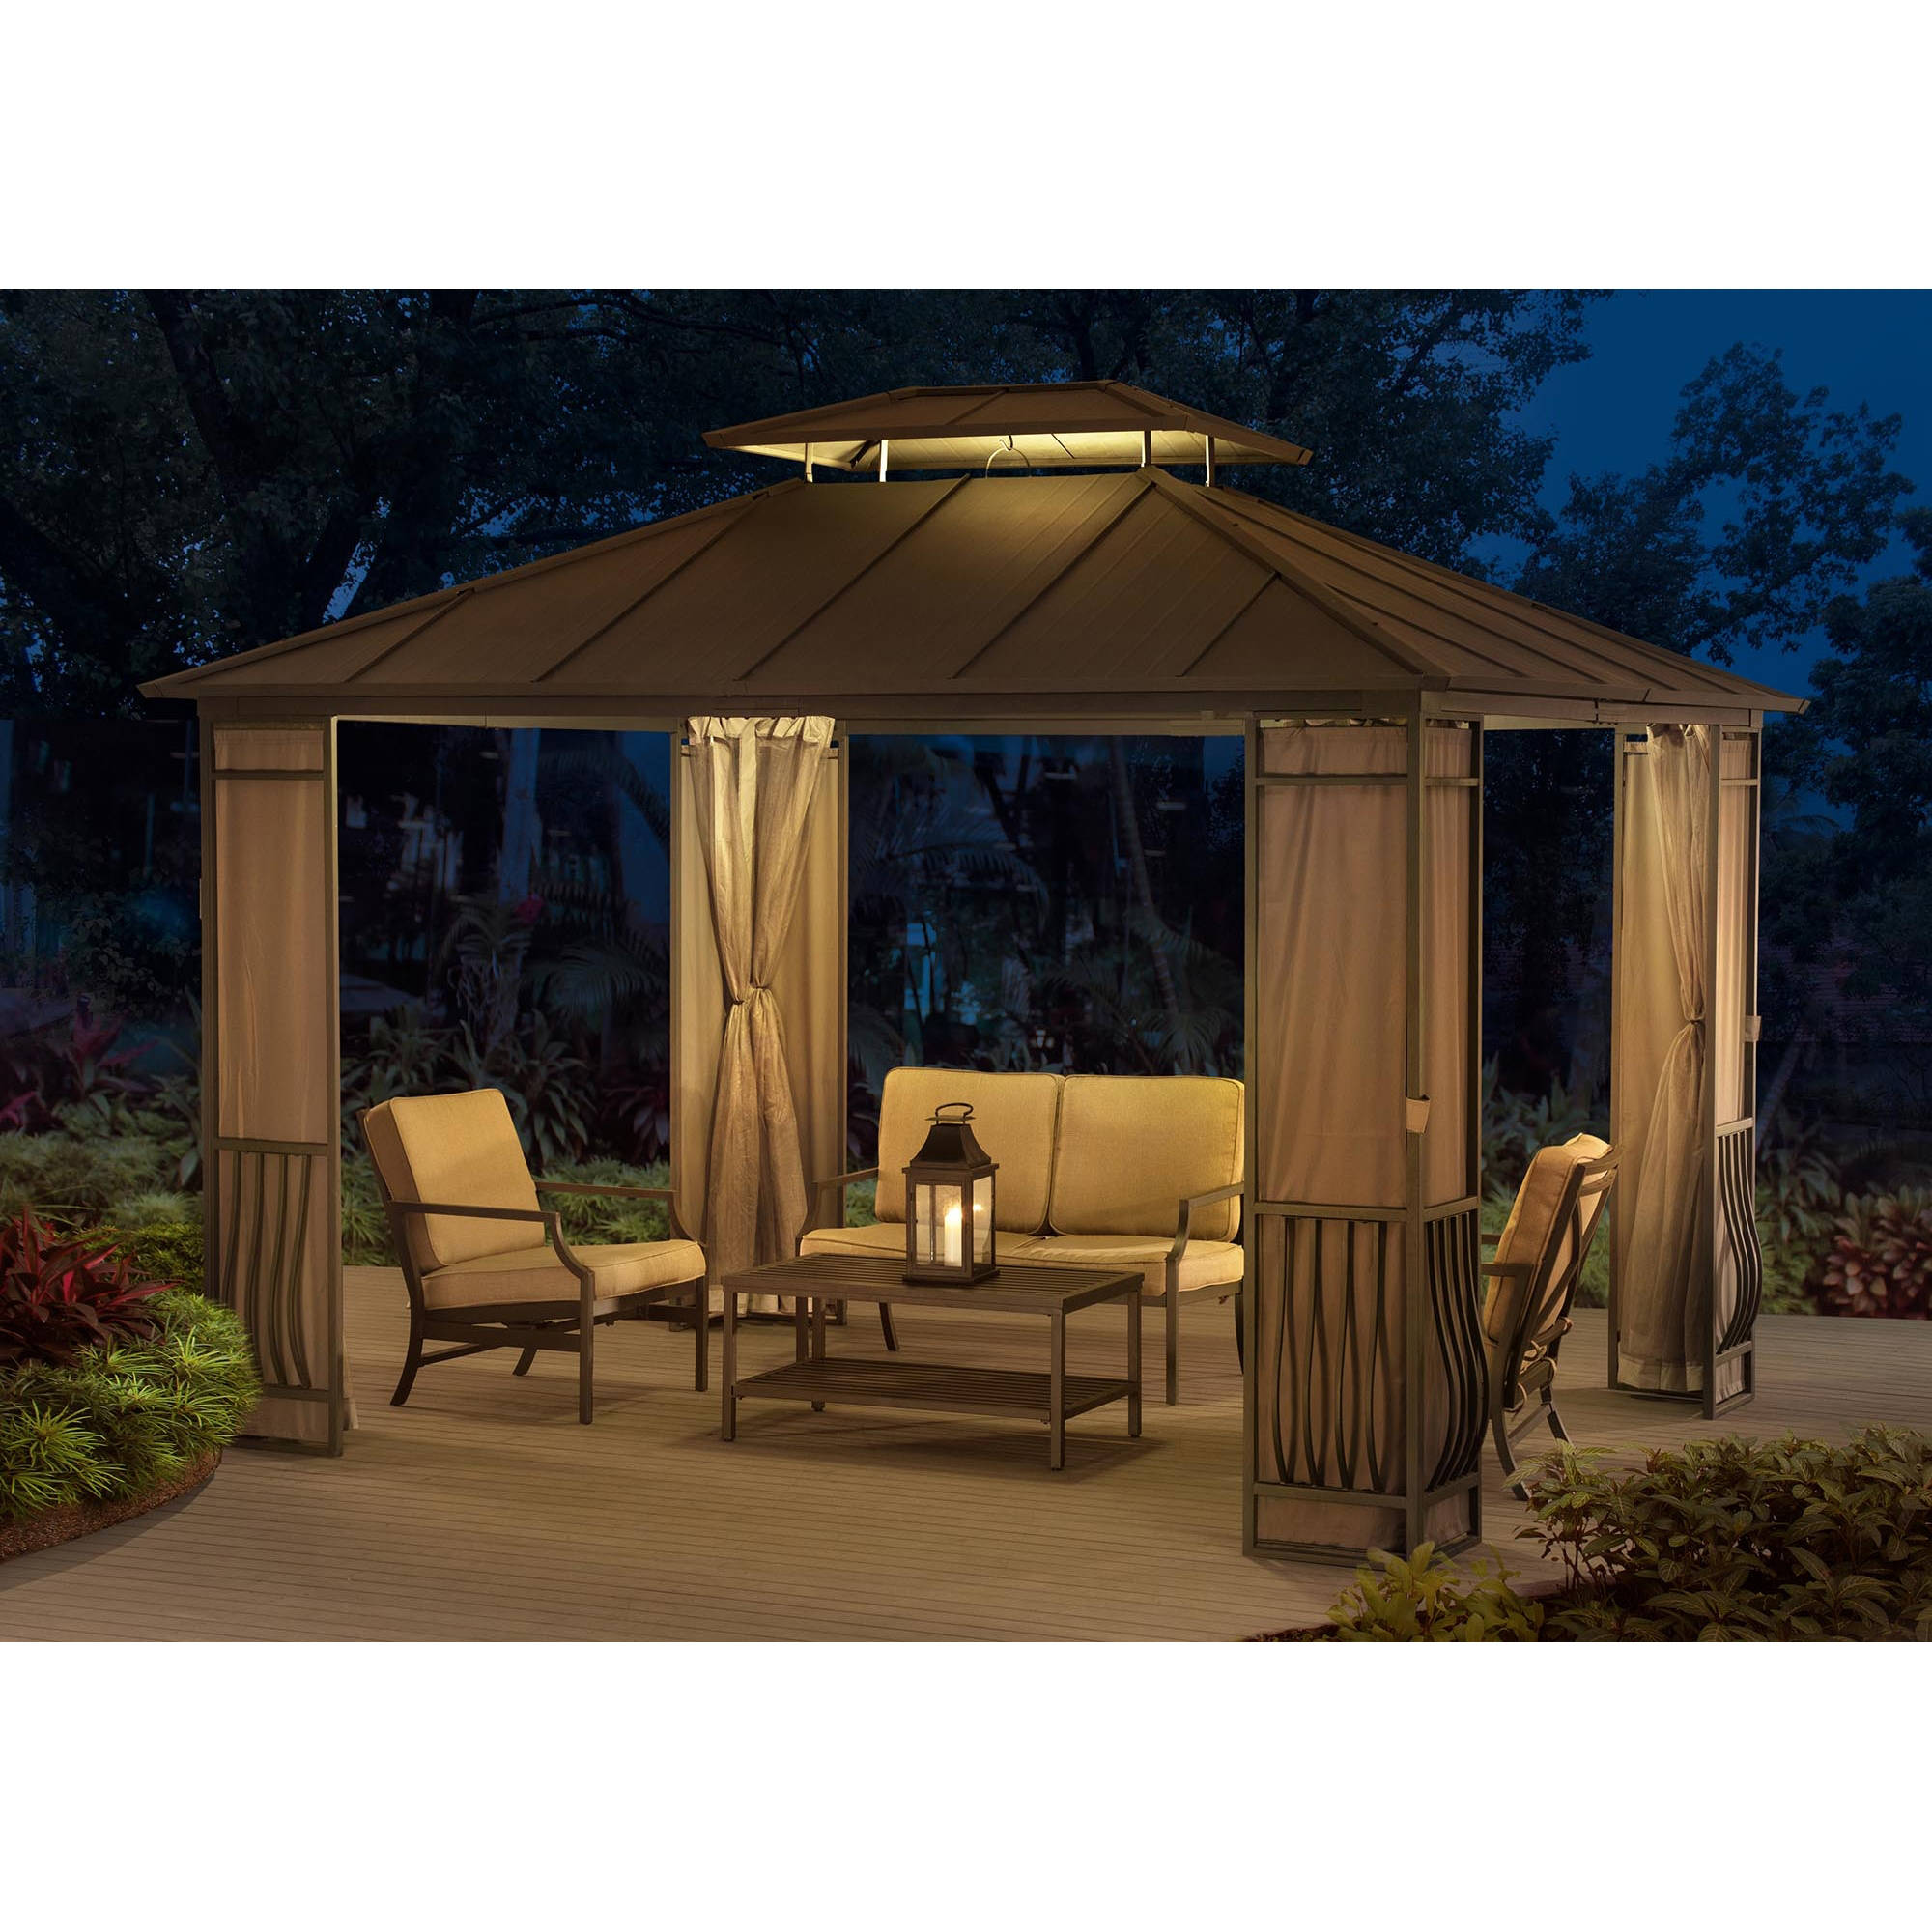 Sunjoy 110102067 12' x 10' Orleans Hard-Top Gazebo by SunNest Services LLC